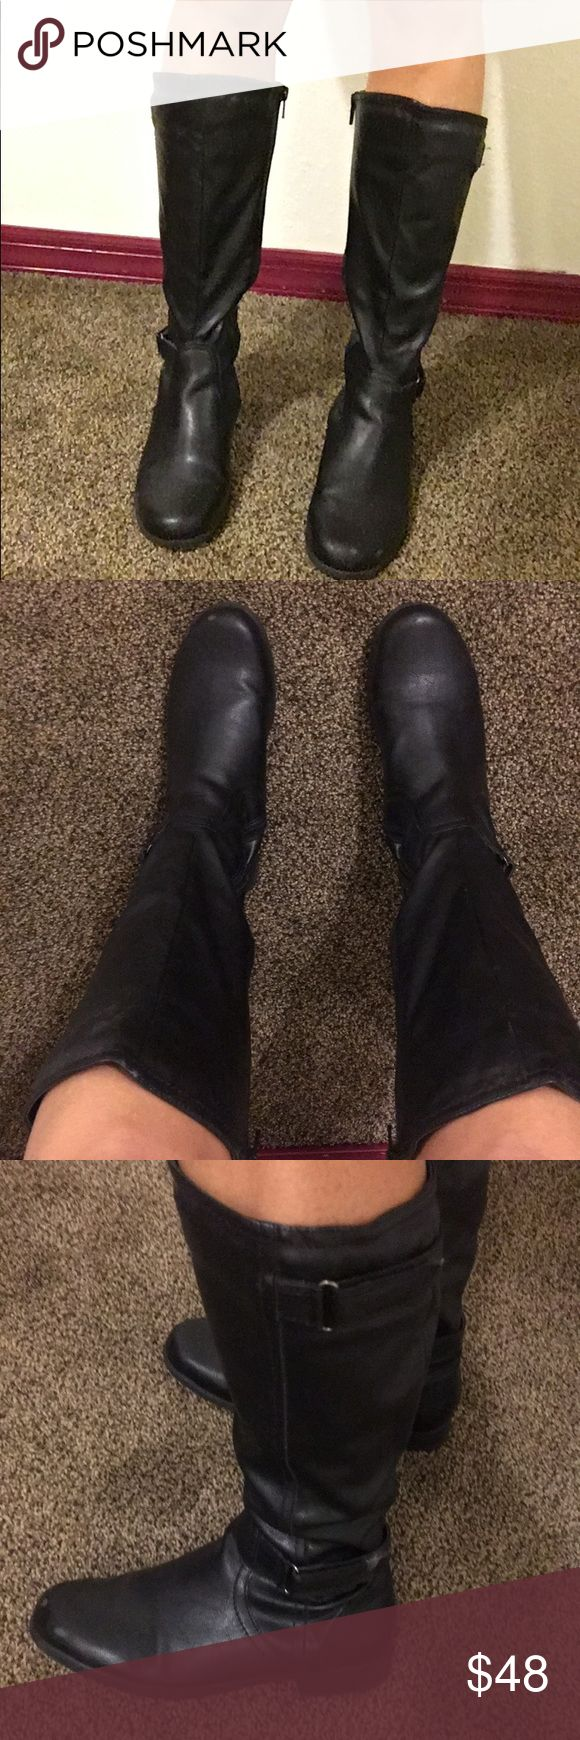 Black leather boots. Tall black leather boots. Great condition. Size US 6.5 Hush Puppies Shoes Combat & Moto Boots